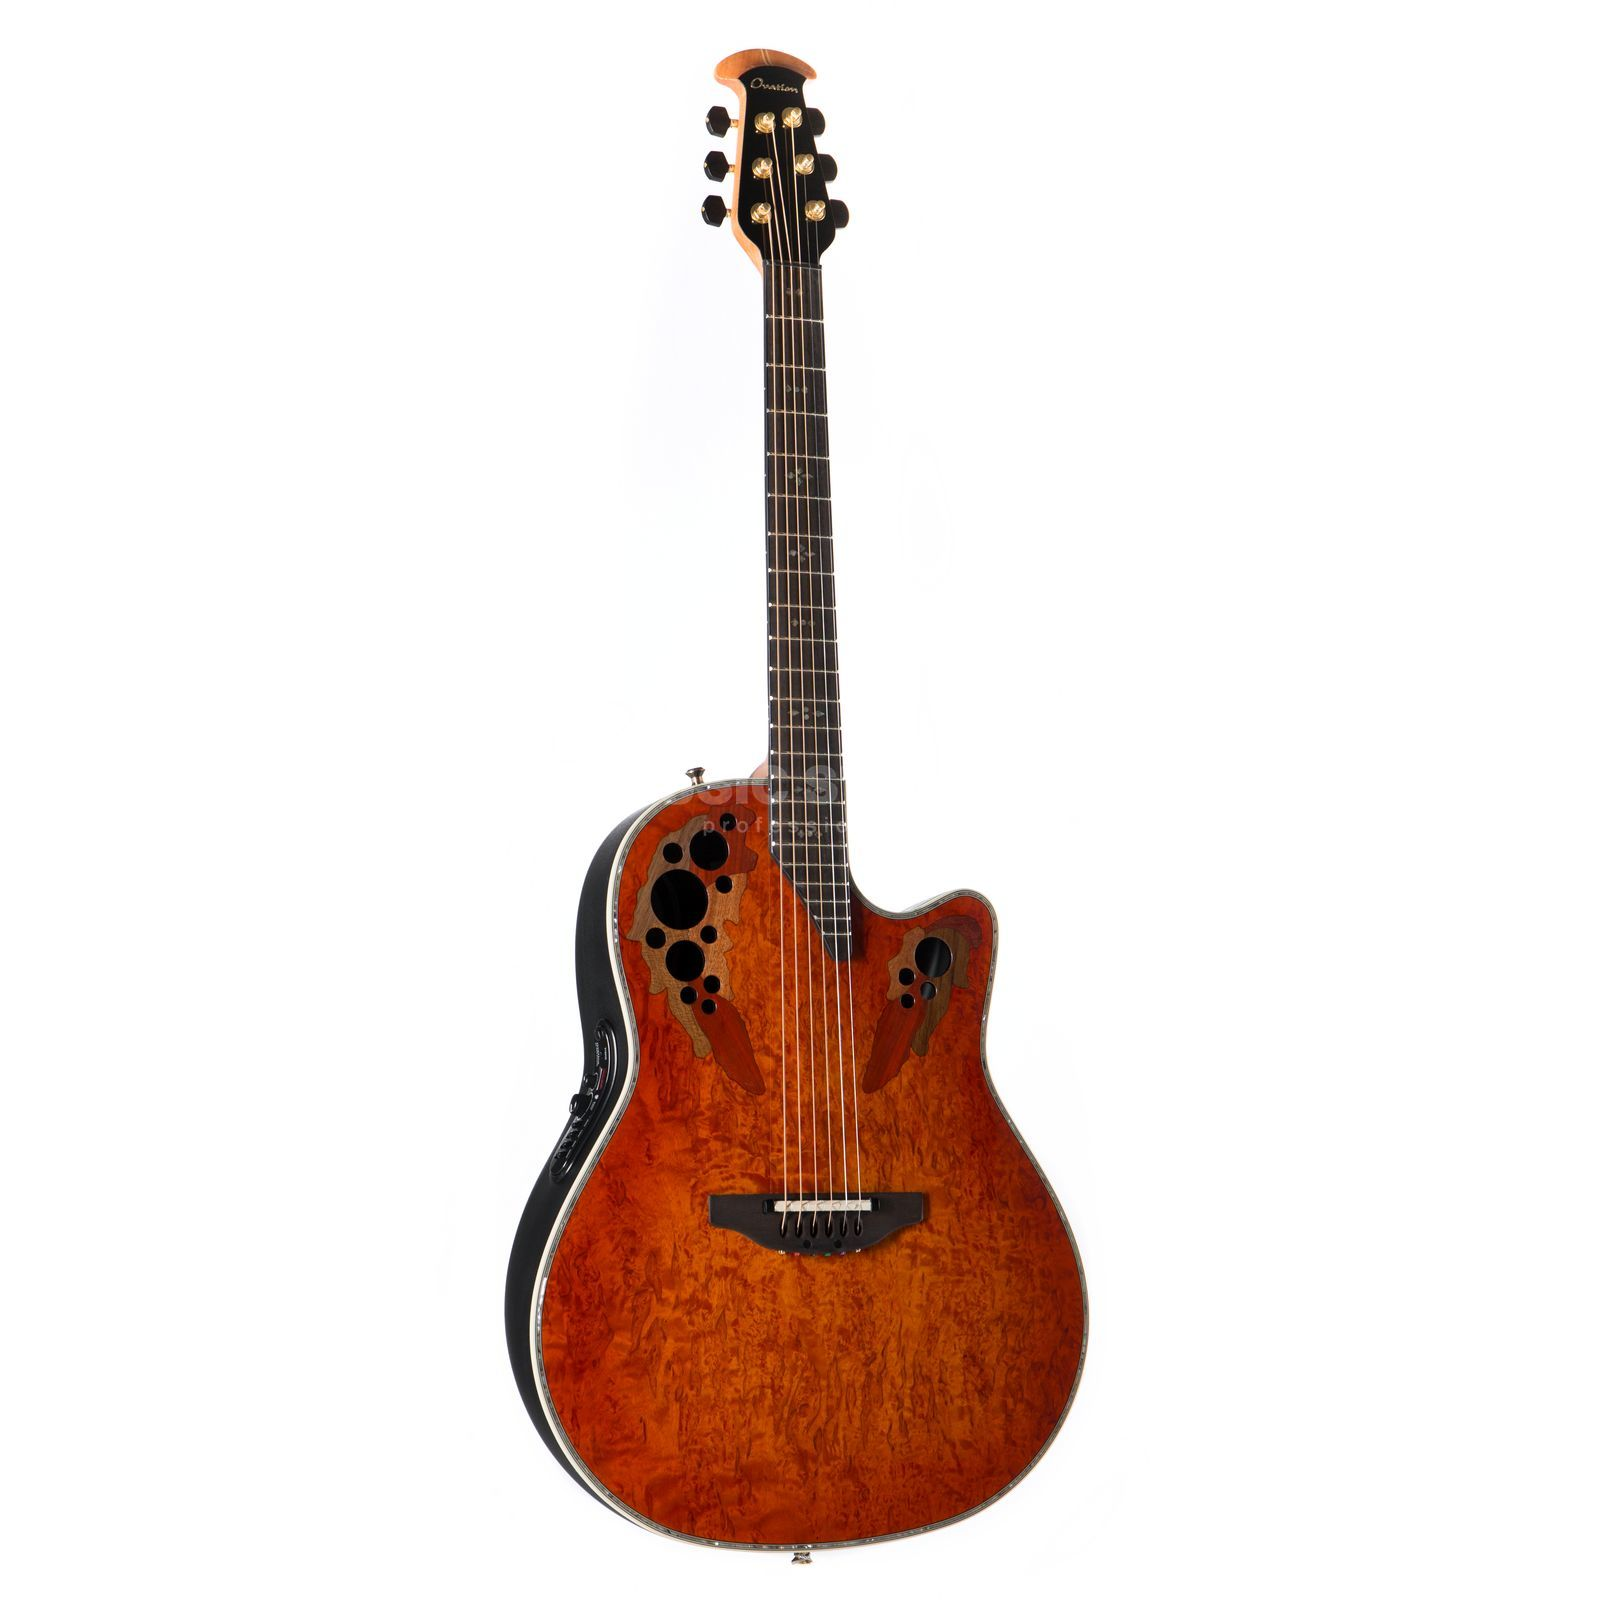 Ovation C2078AXP-OBK Limited Elite Plus Karelian Birch Produktbillede